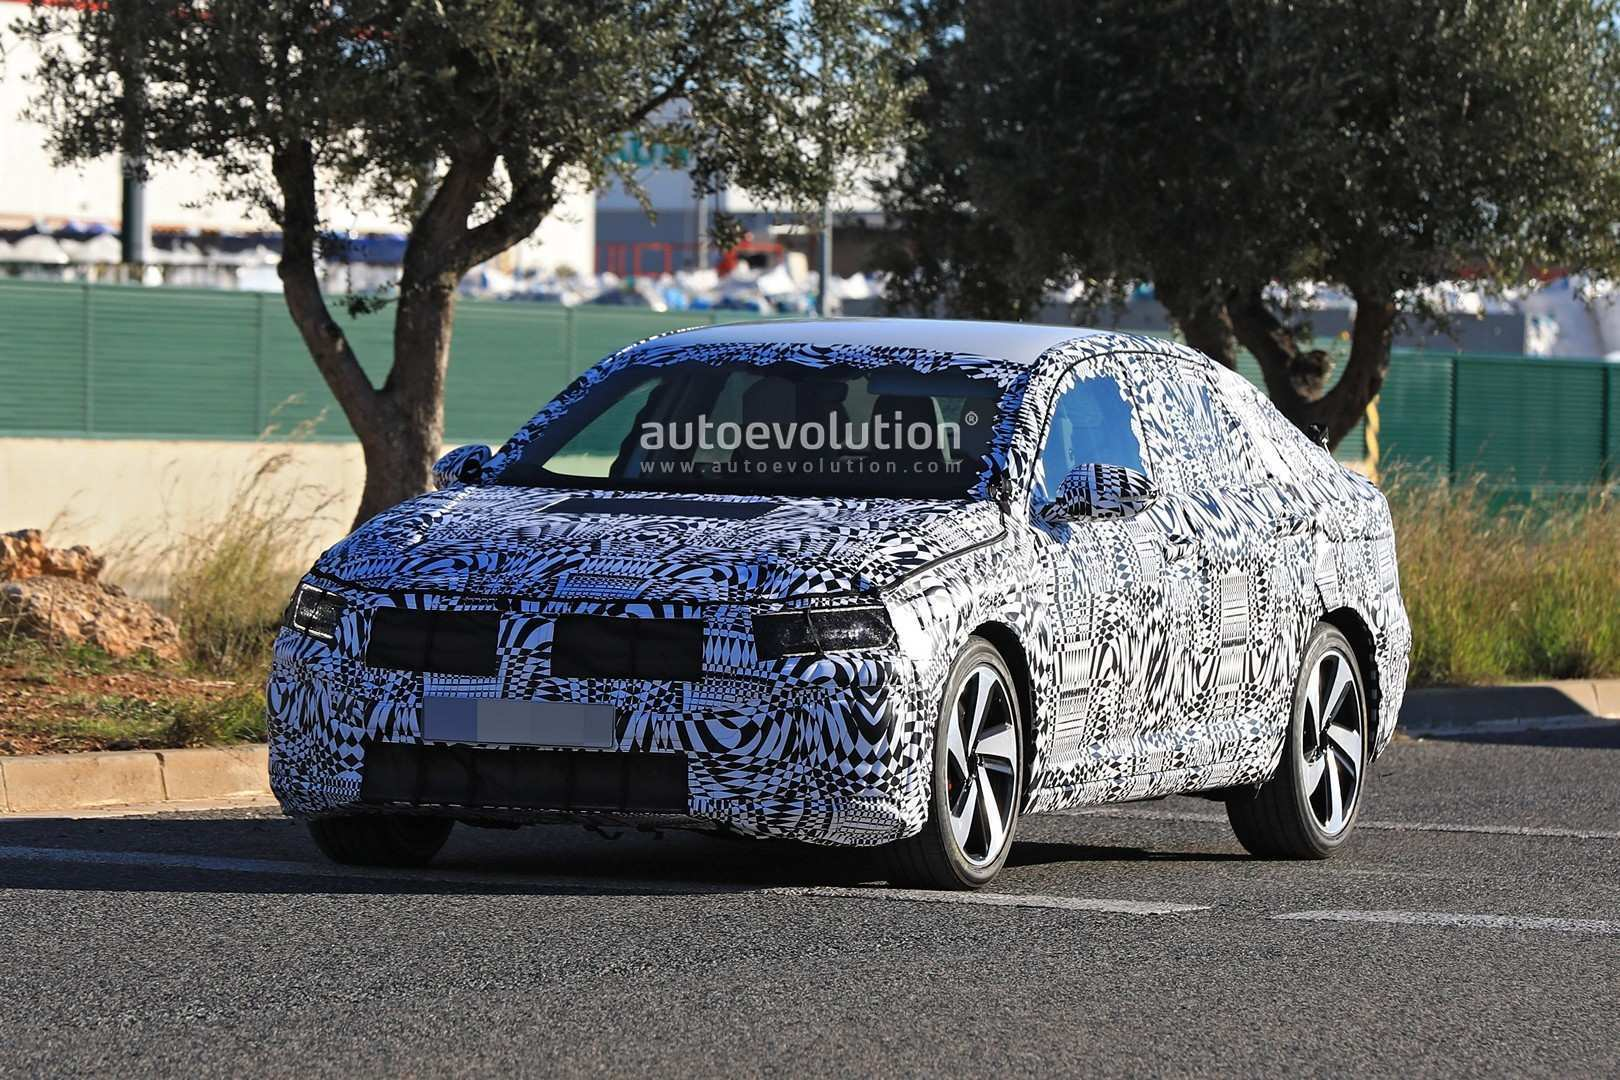 78 Great 2019 Jetta Spy Shots Speed Test with 2019 Jetta Spy Shots